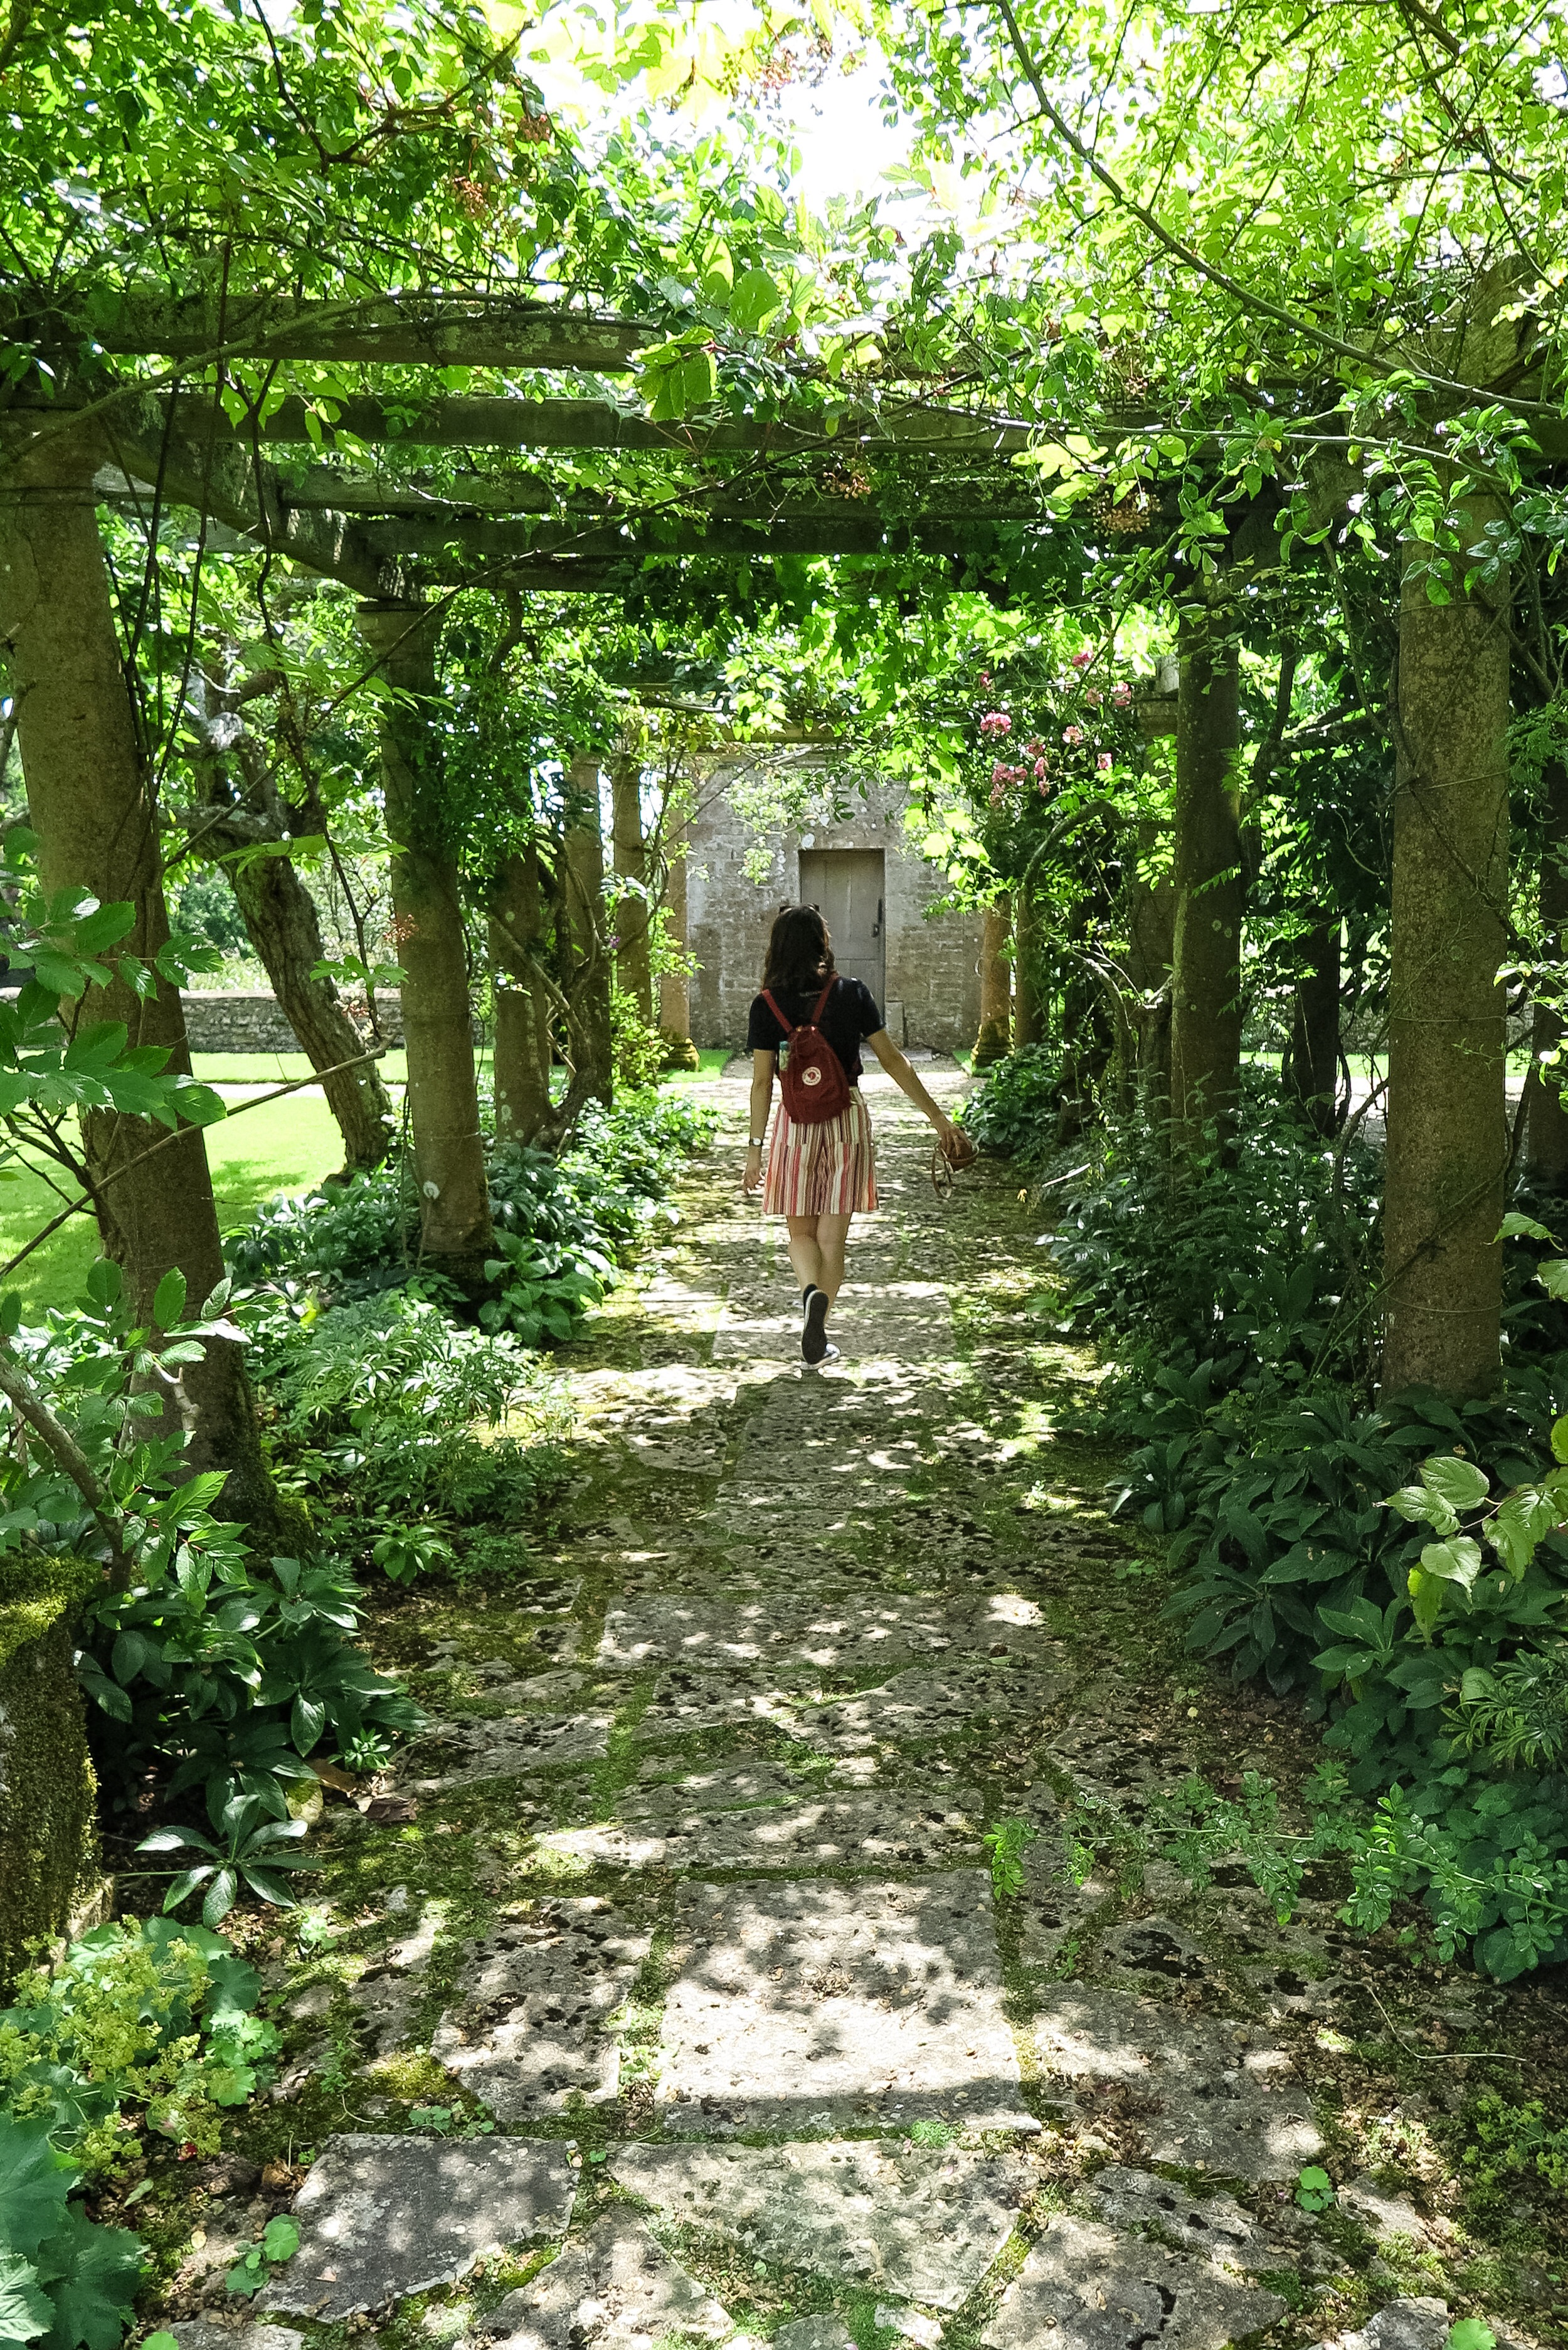 Walking under the pergola